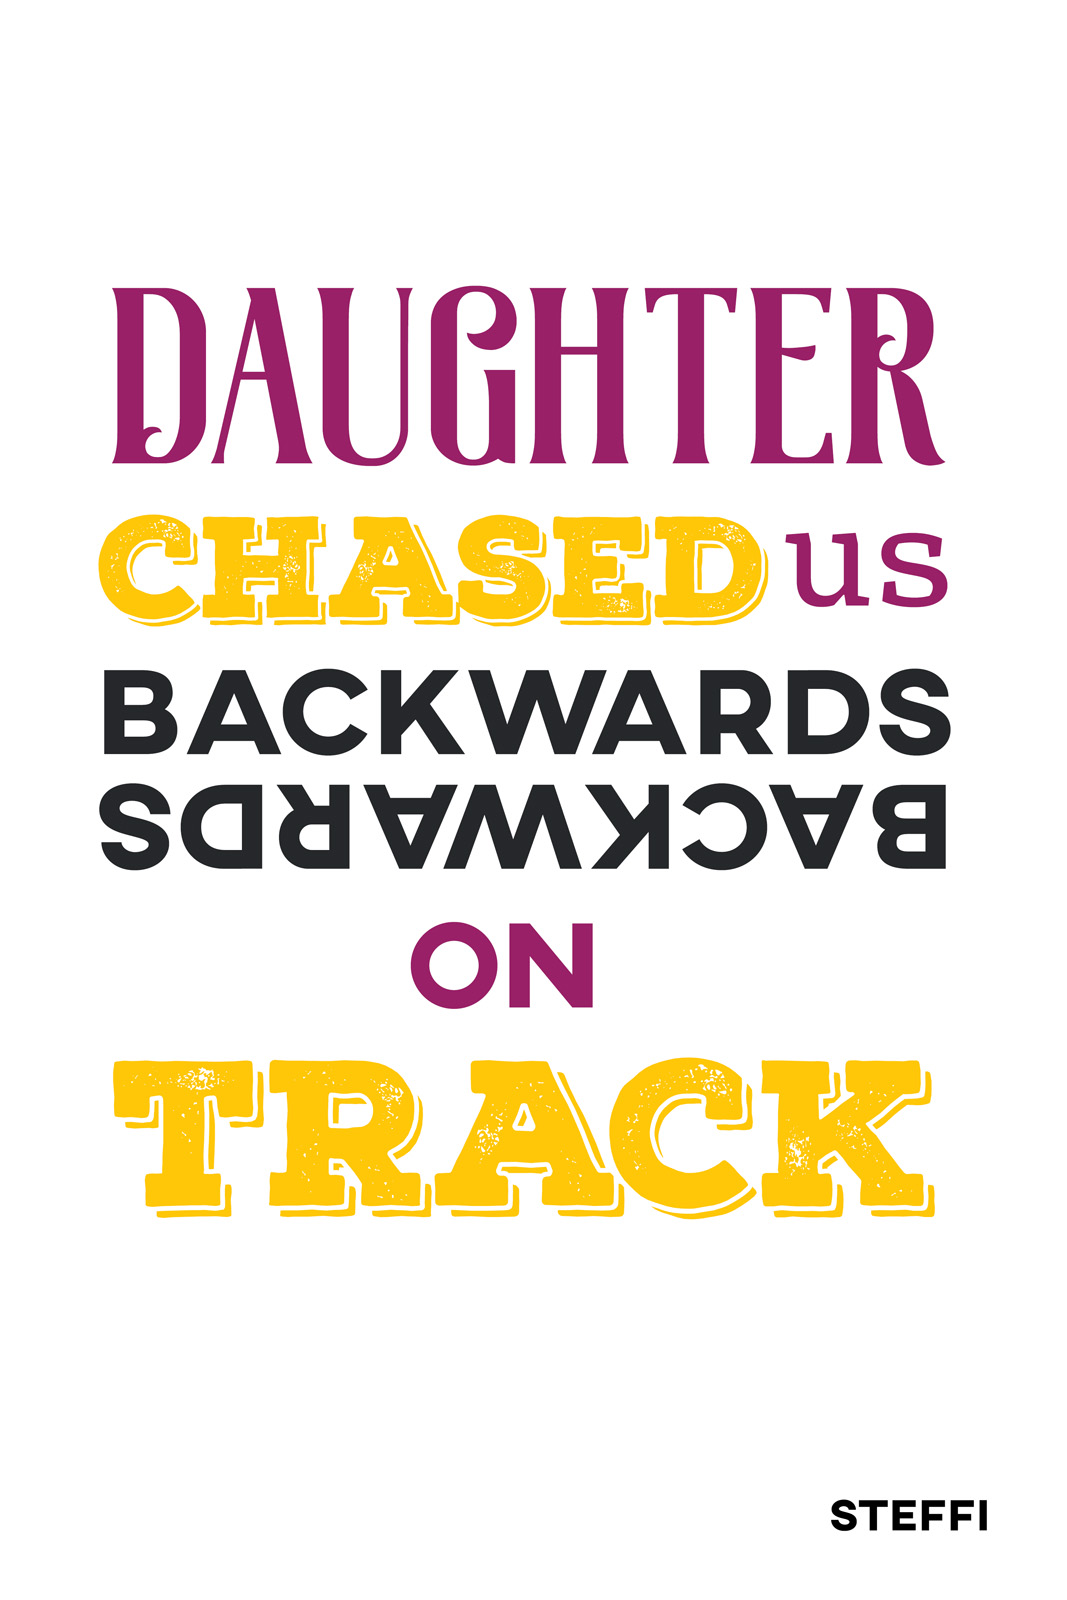 Daughter chased us backwards on track